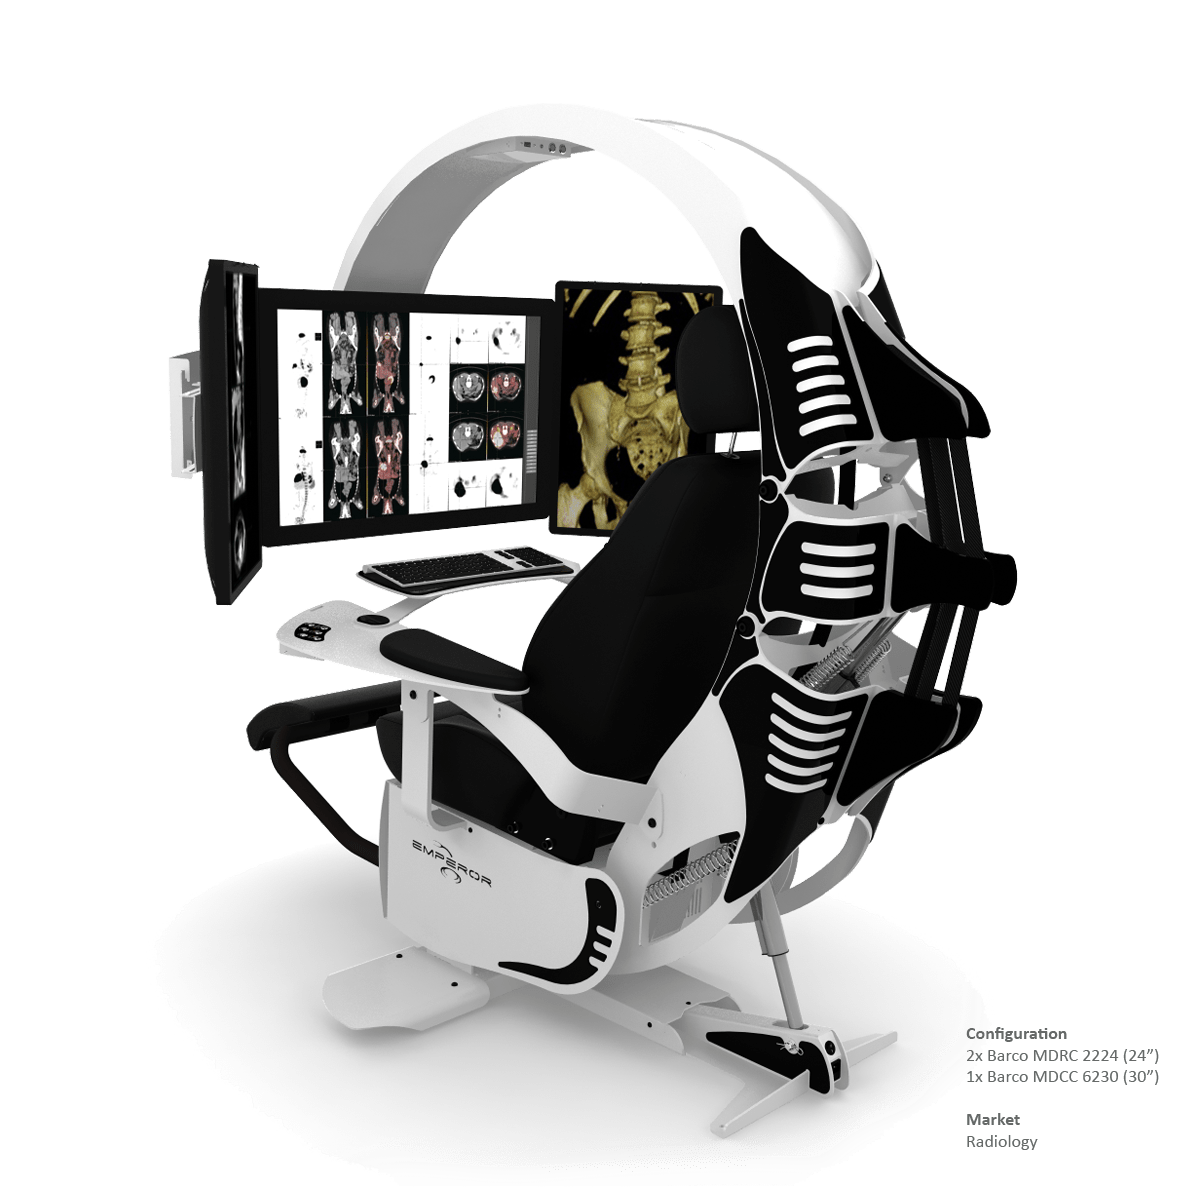 ergonomic mesh chair from emperor lounge cushions target this is the ultimate in computer workstations